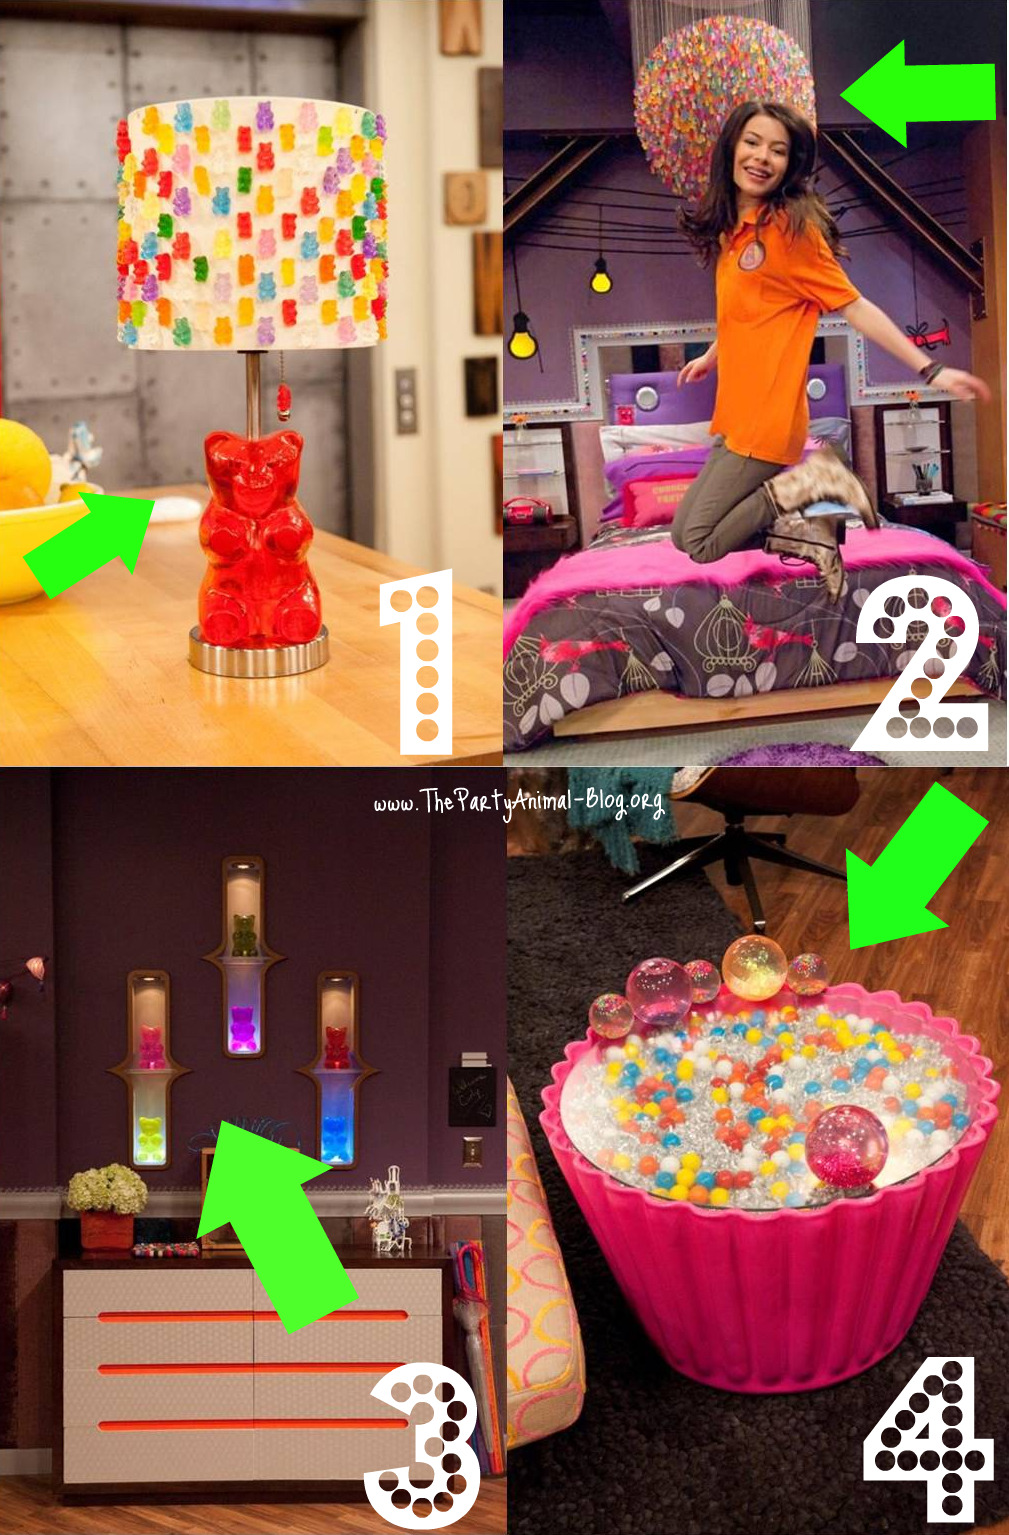 icarly celebrates her birthday with an icarly bedroom makeover